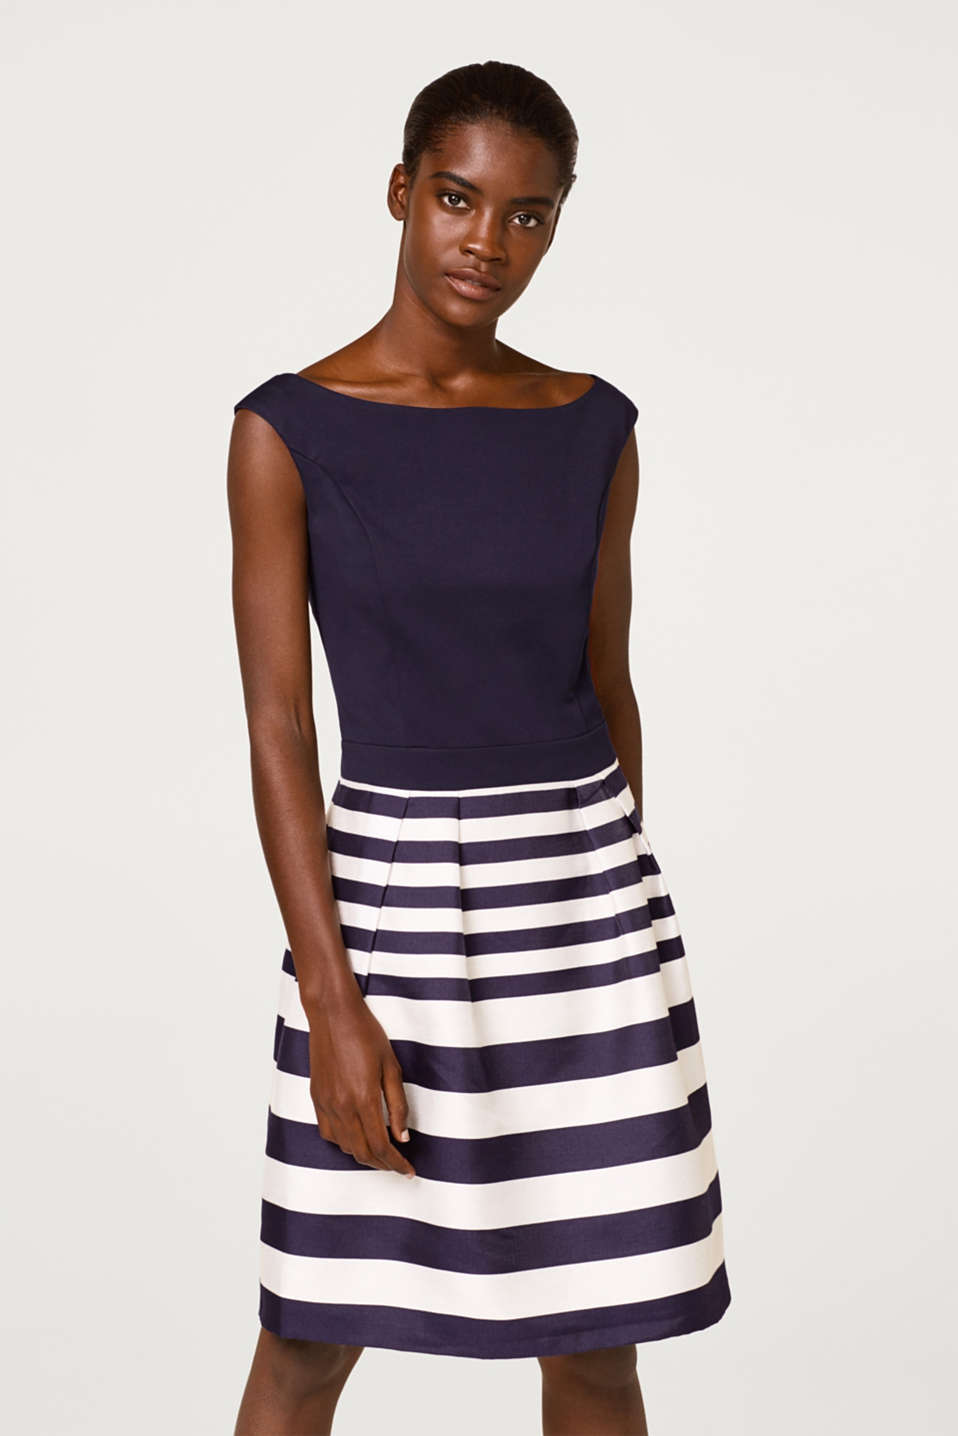 Dress with a jersey top and woven skirt